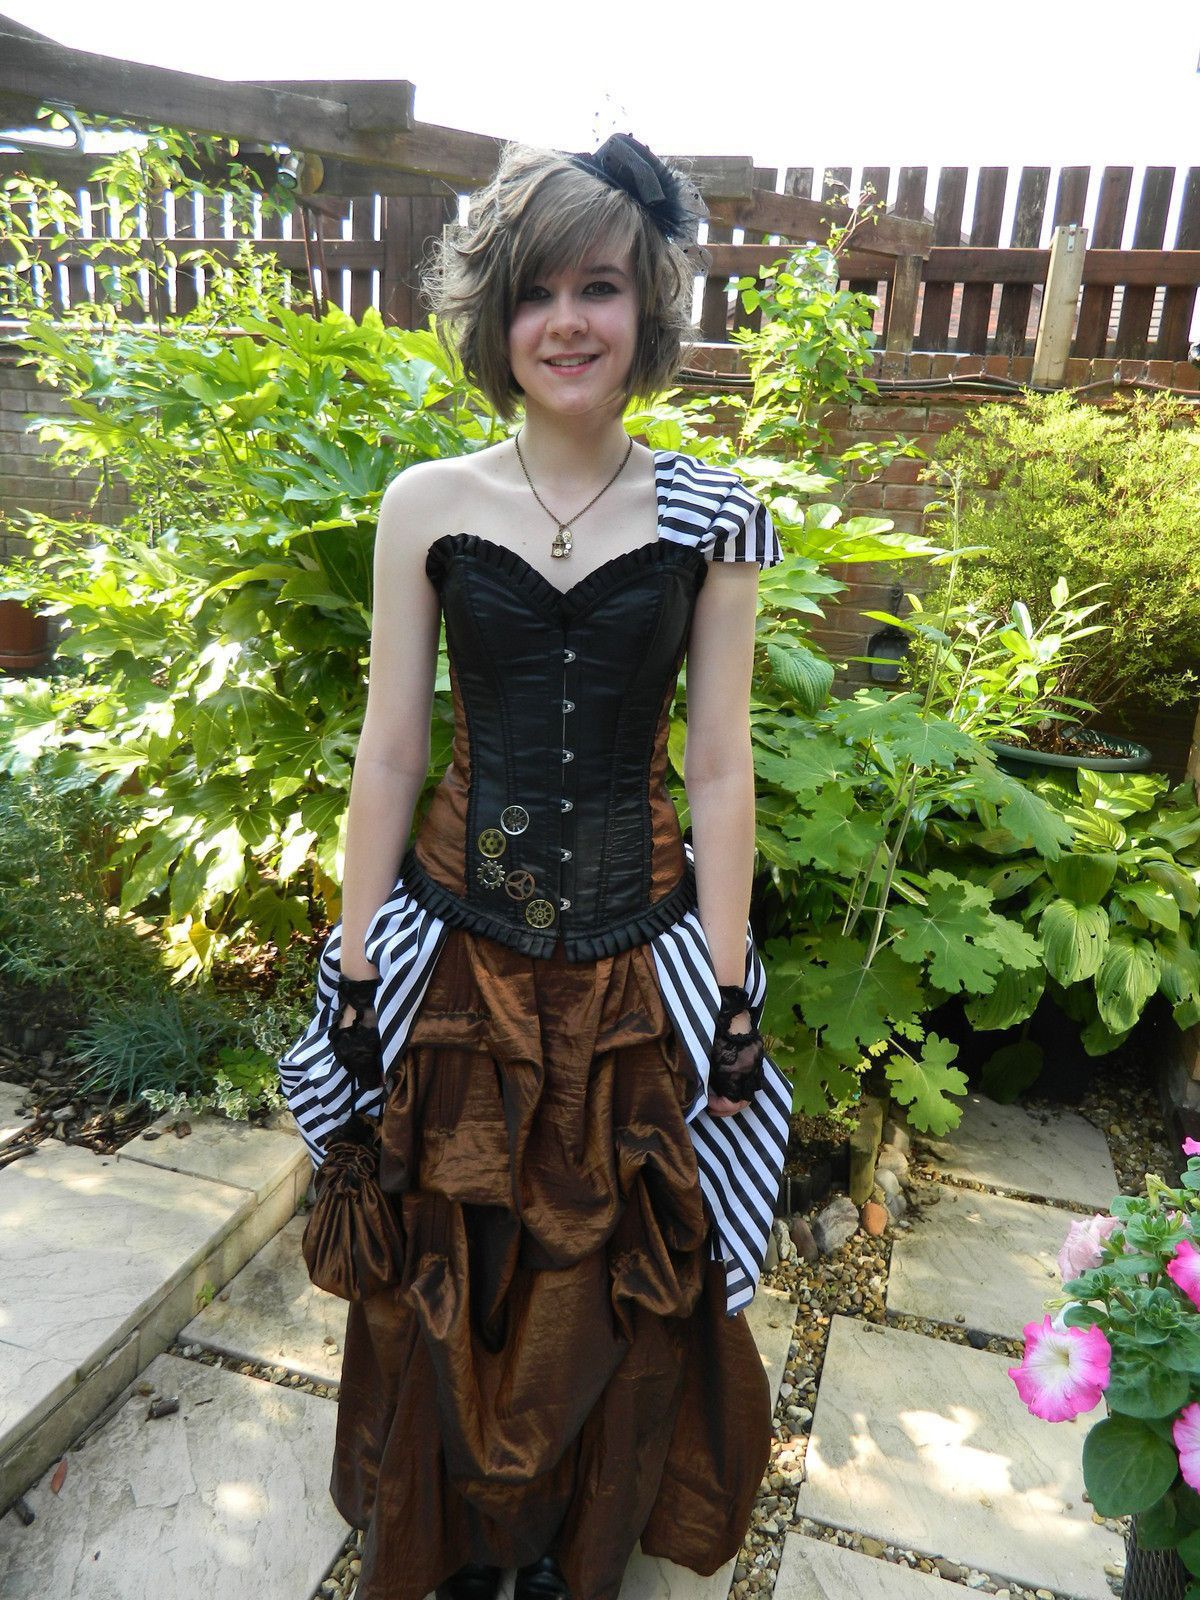 8b274e2fef8b Steampunk Prom Dress • Free tutorial with pictures on how to sew a prom  dress in 8 steps